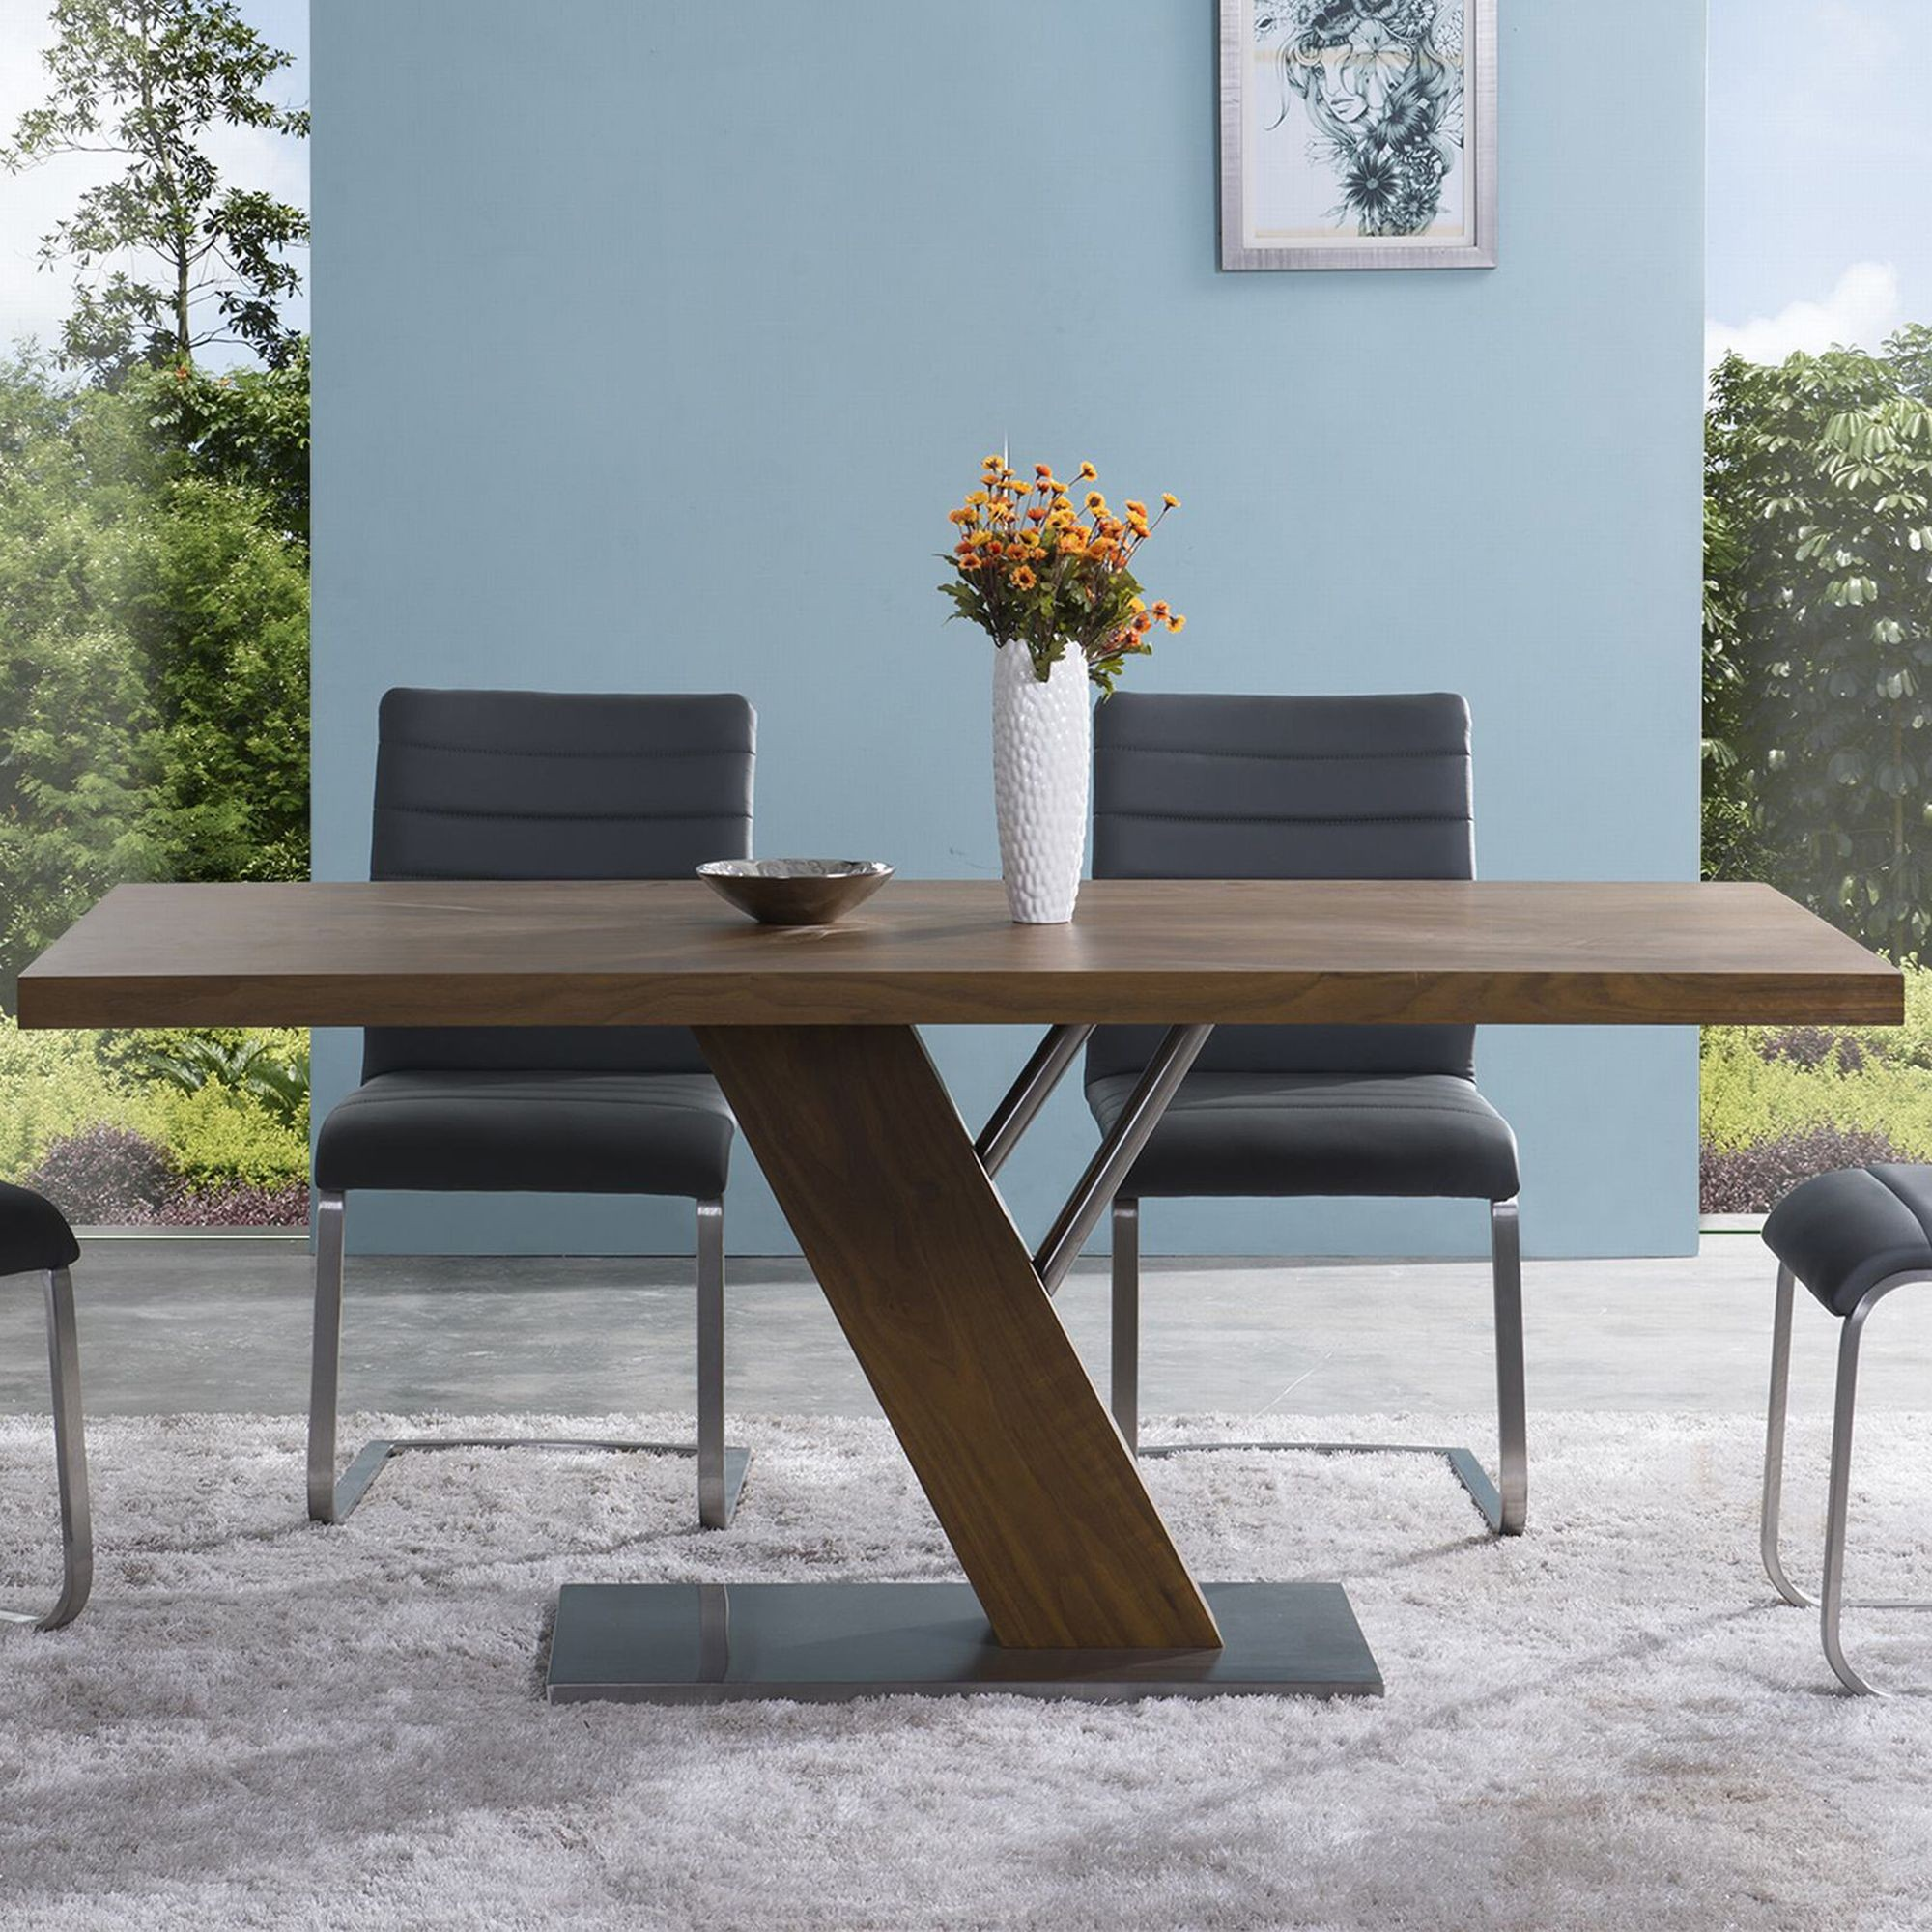 Fusion contemporary stainless steel dining table for Stainless steel dining table